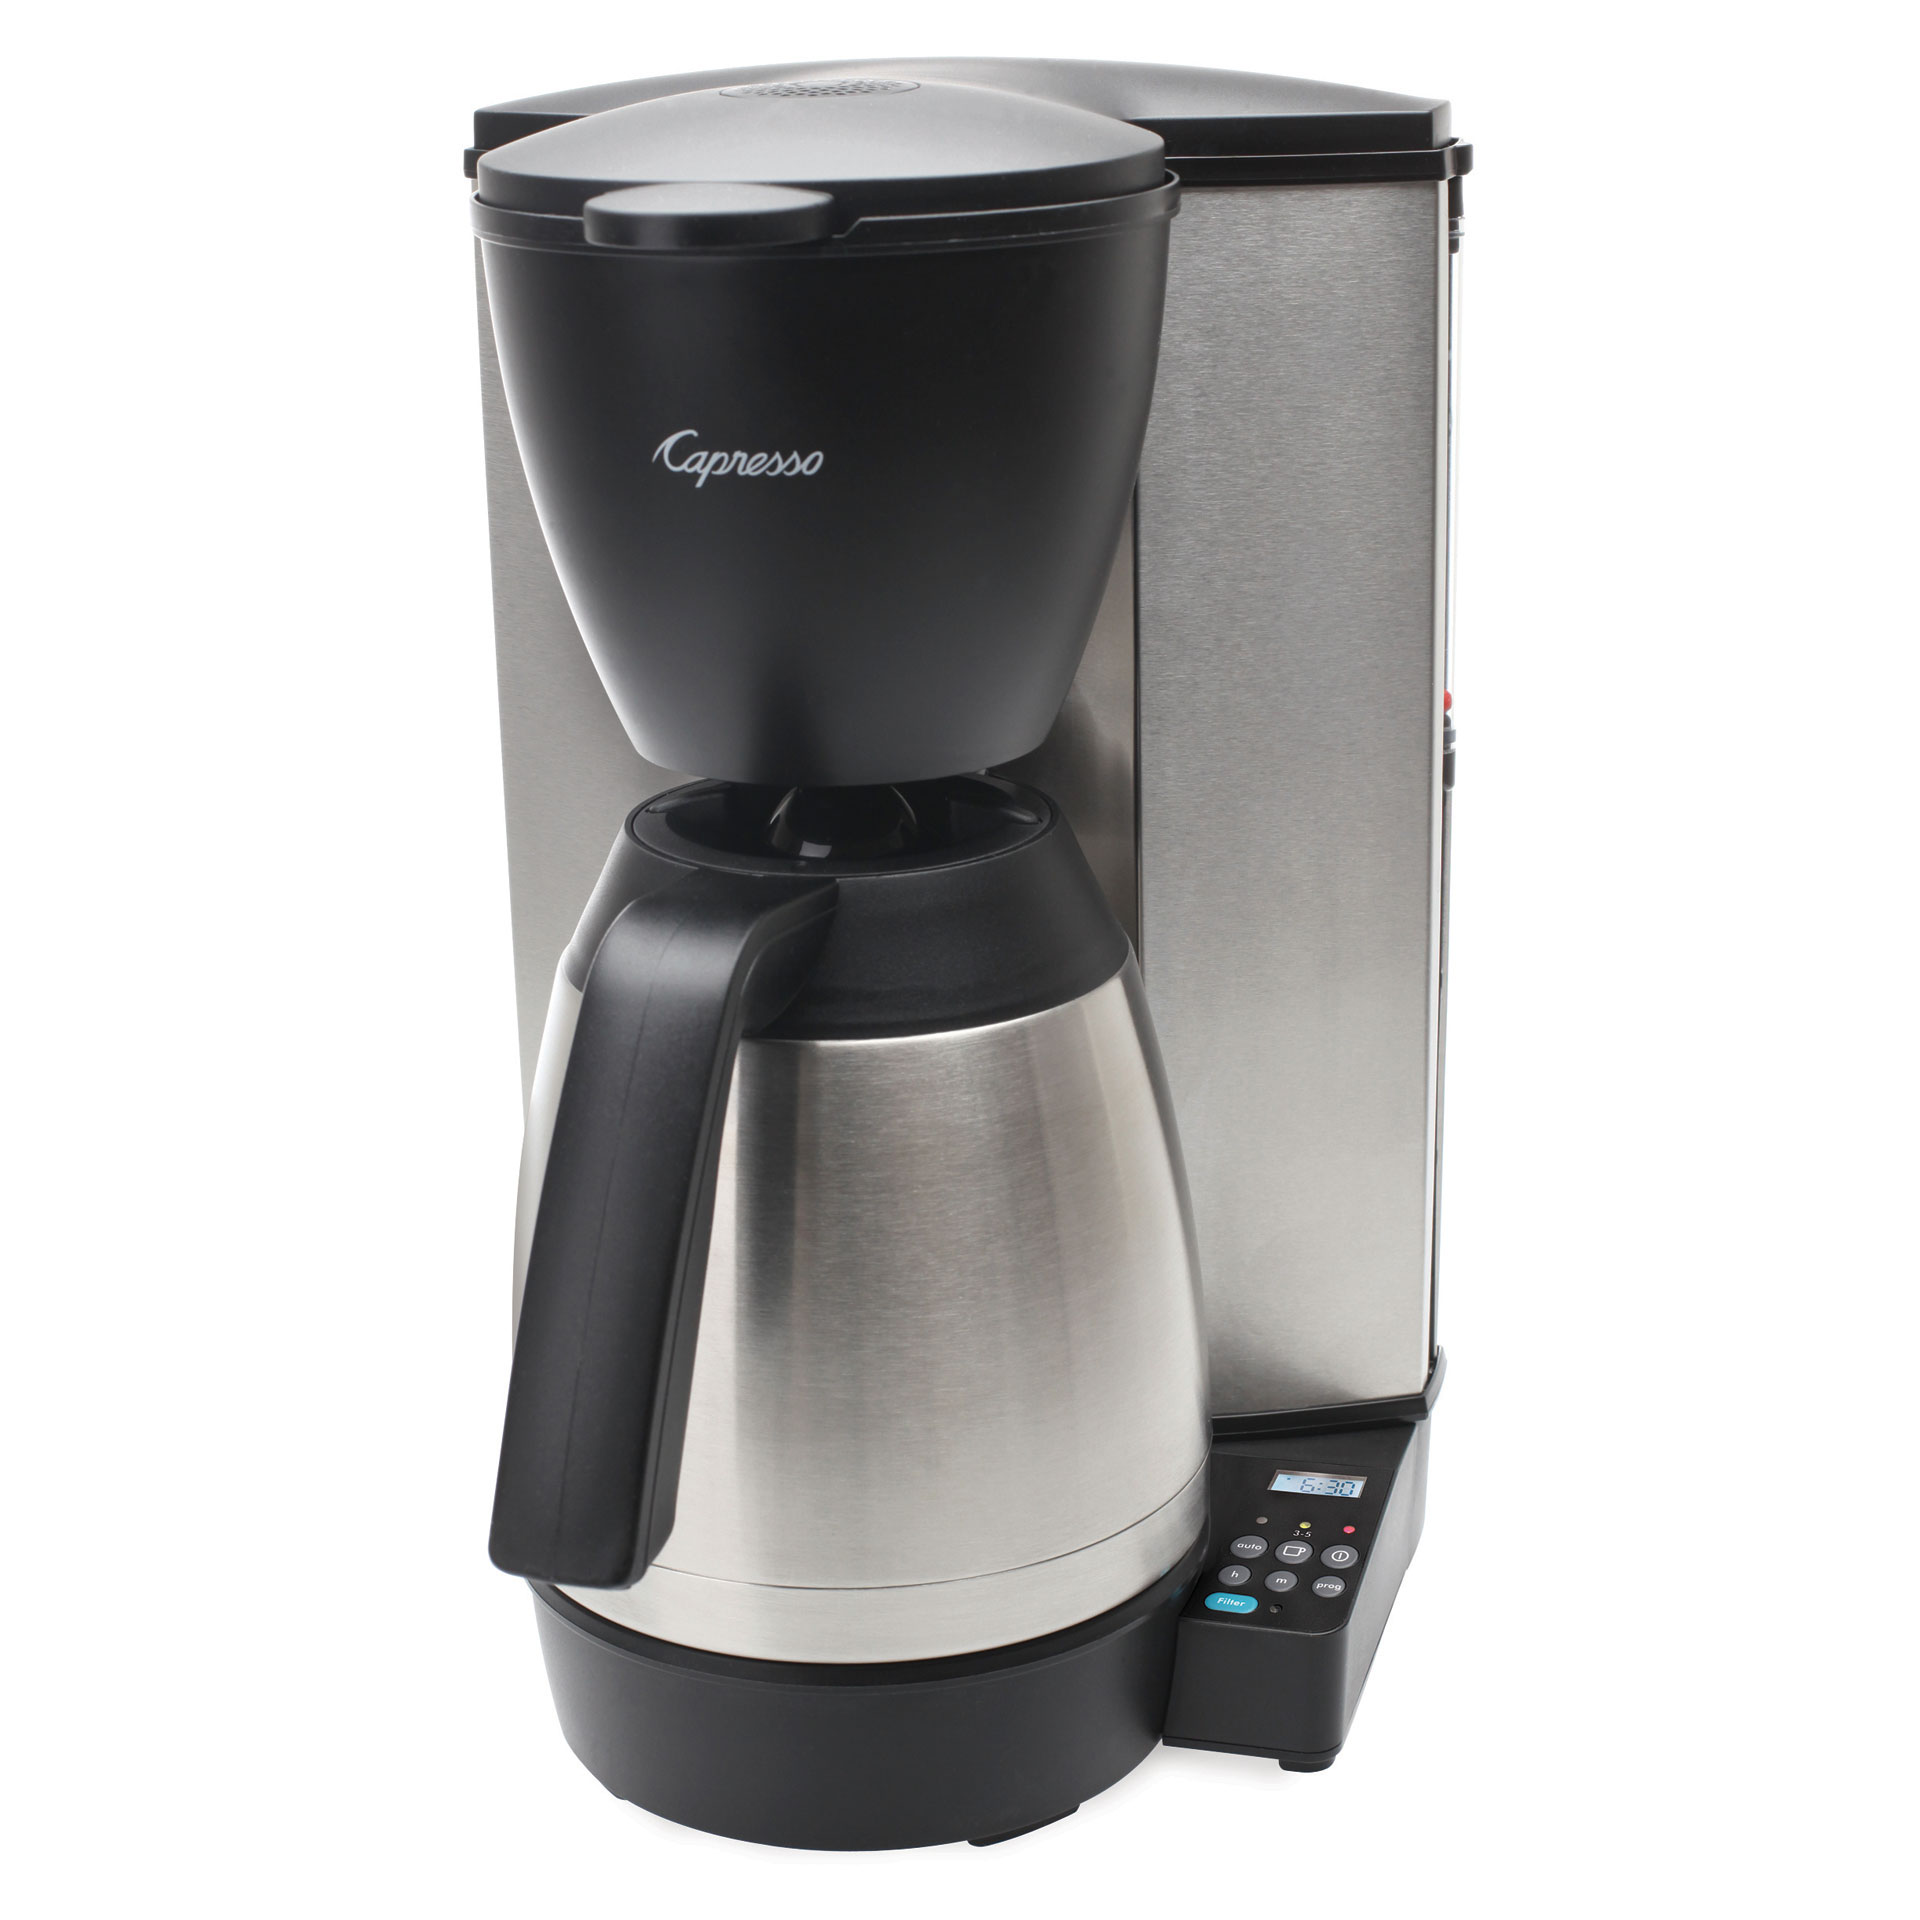 Coffee Maker With Carafe Reviews : Capresso 10-Cup Programmable Coffee Maker With Thermal Carafe #MT600 PLUS Review